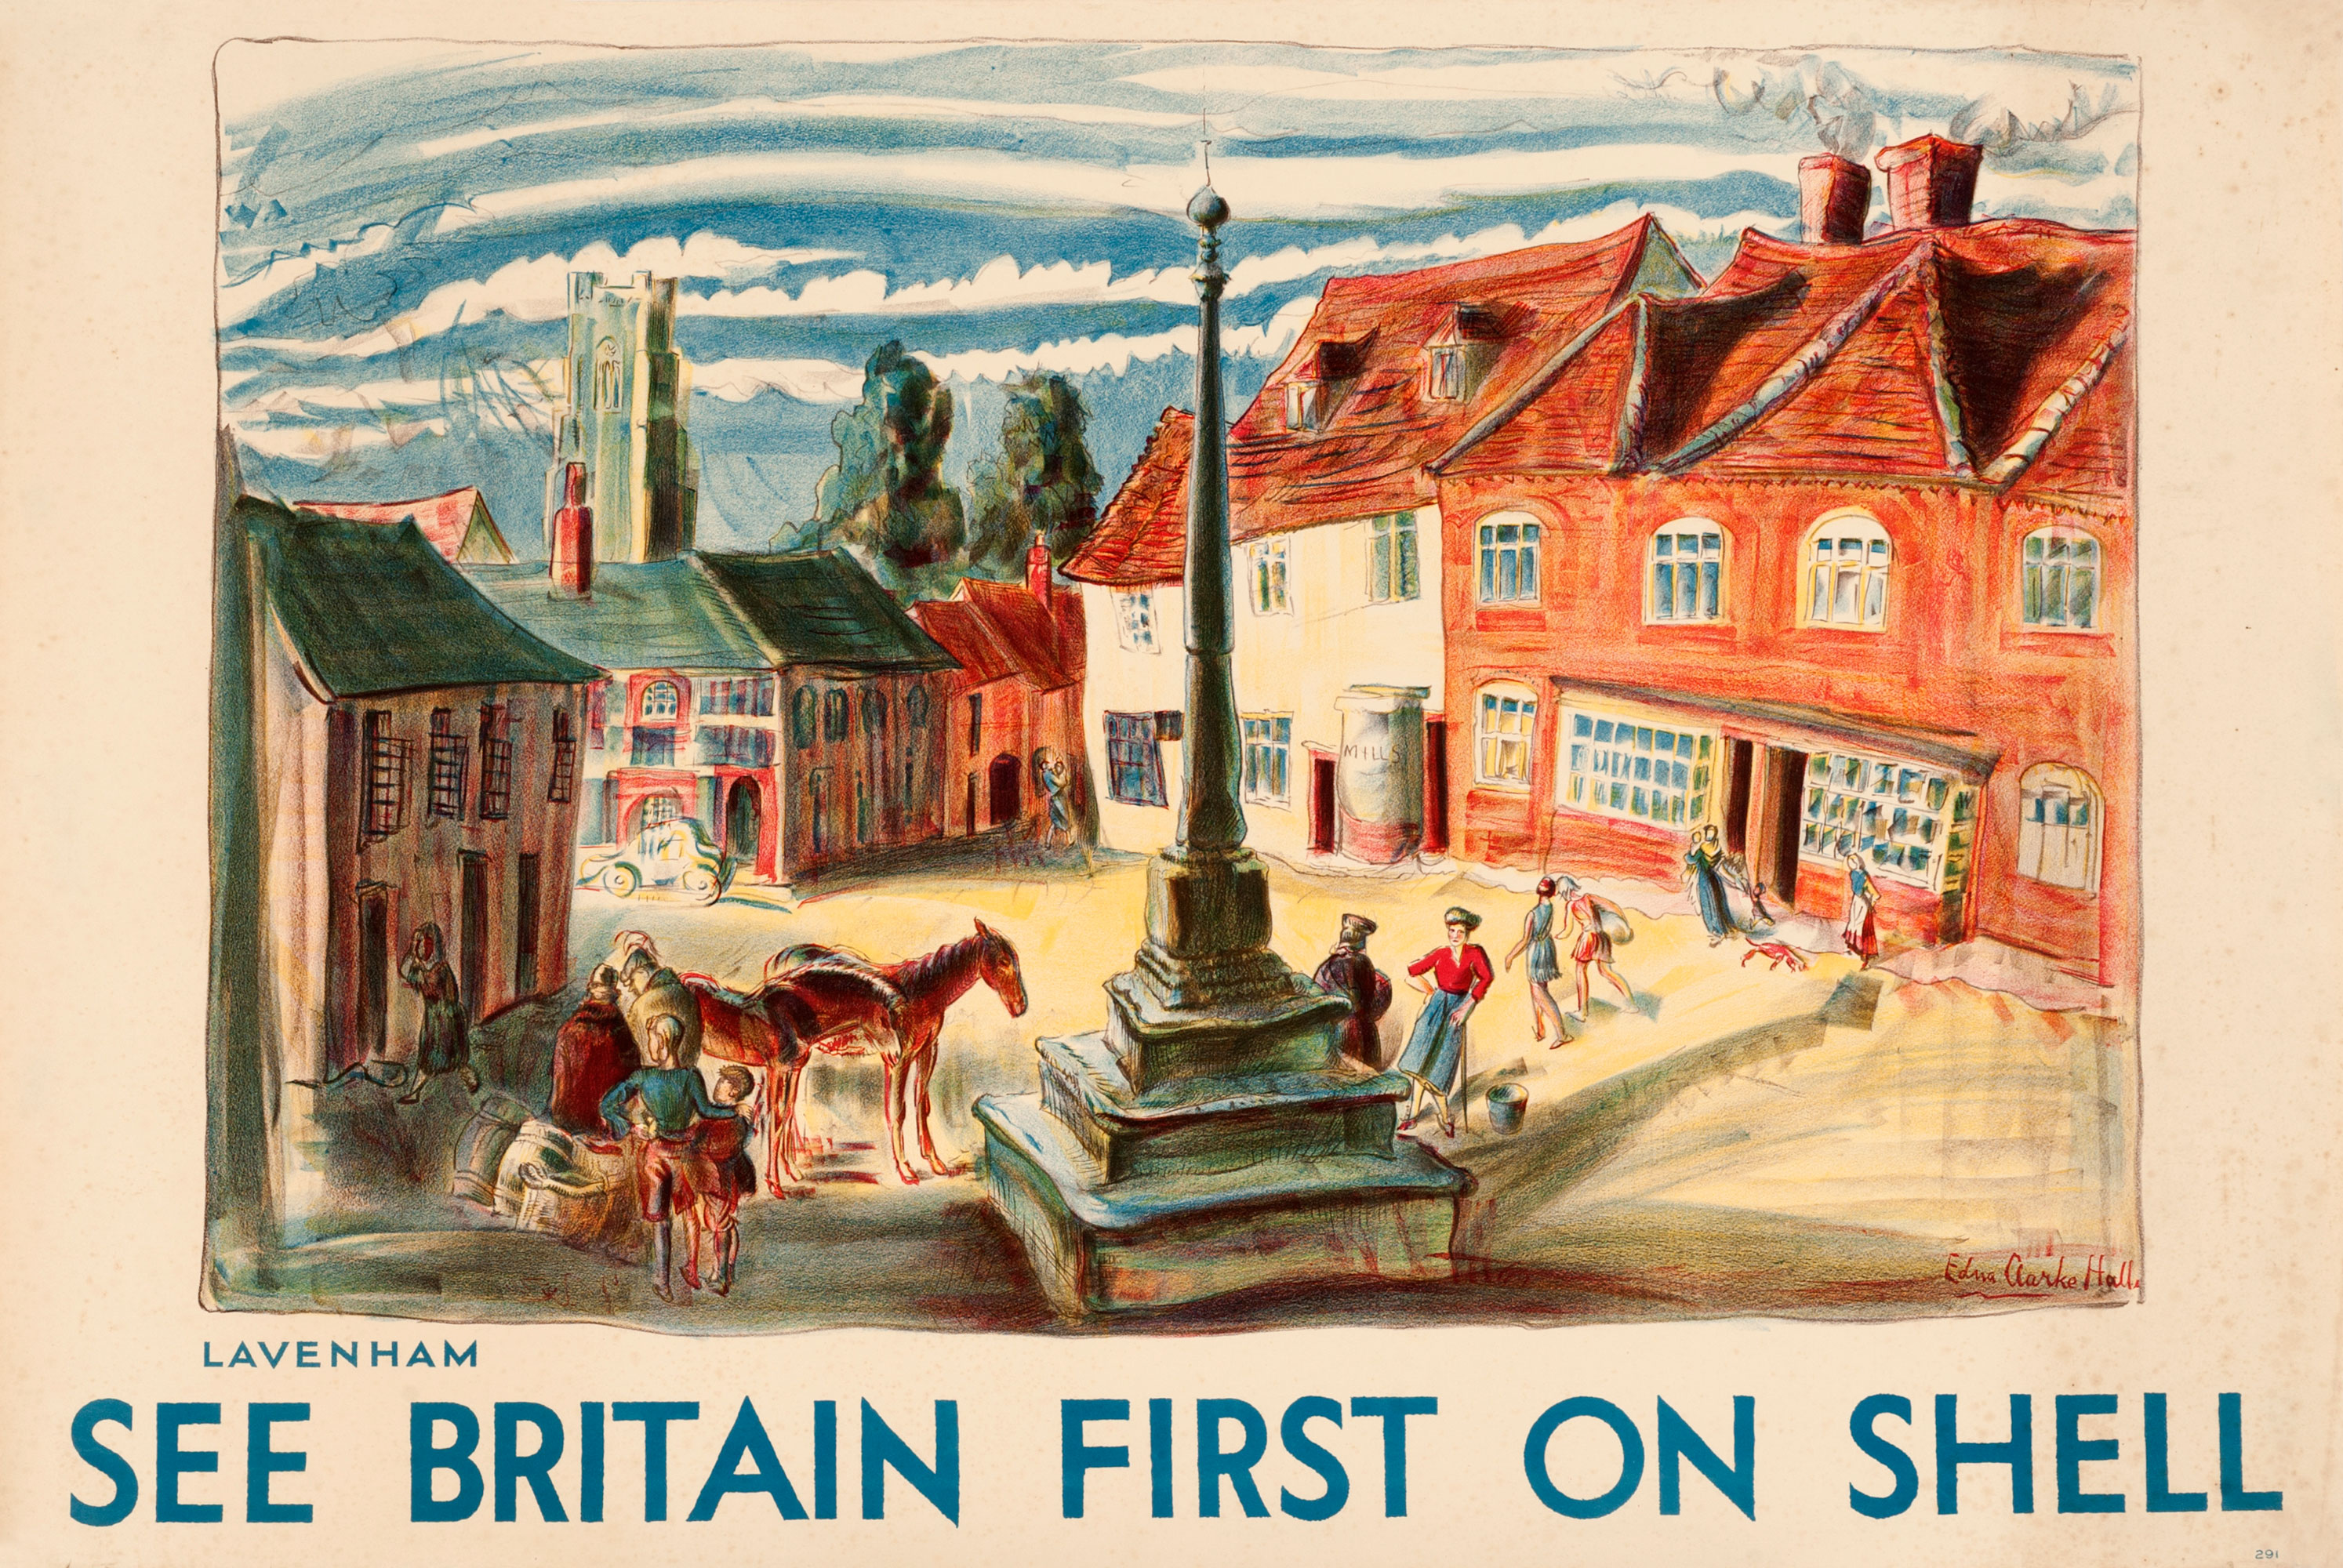 Shell poster number 291, Lavenham by Edna Clarke Hall. Painting of market square, showing the 15th century church in the background, medieval cottages and the market cross.